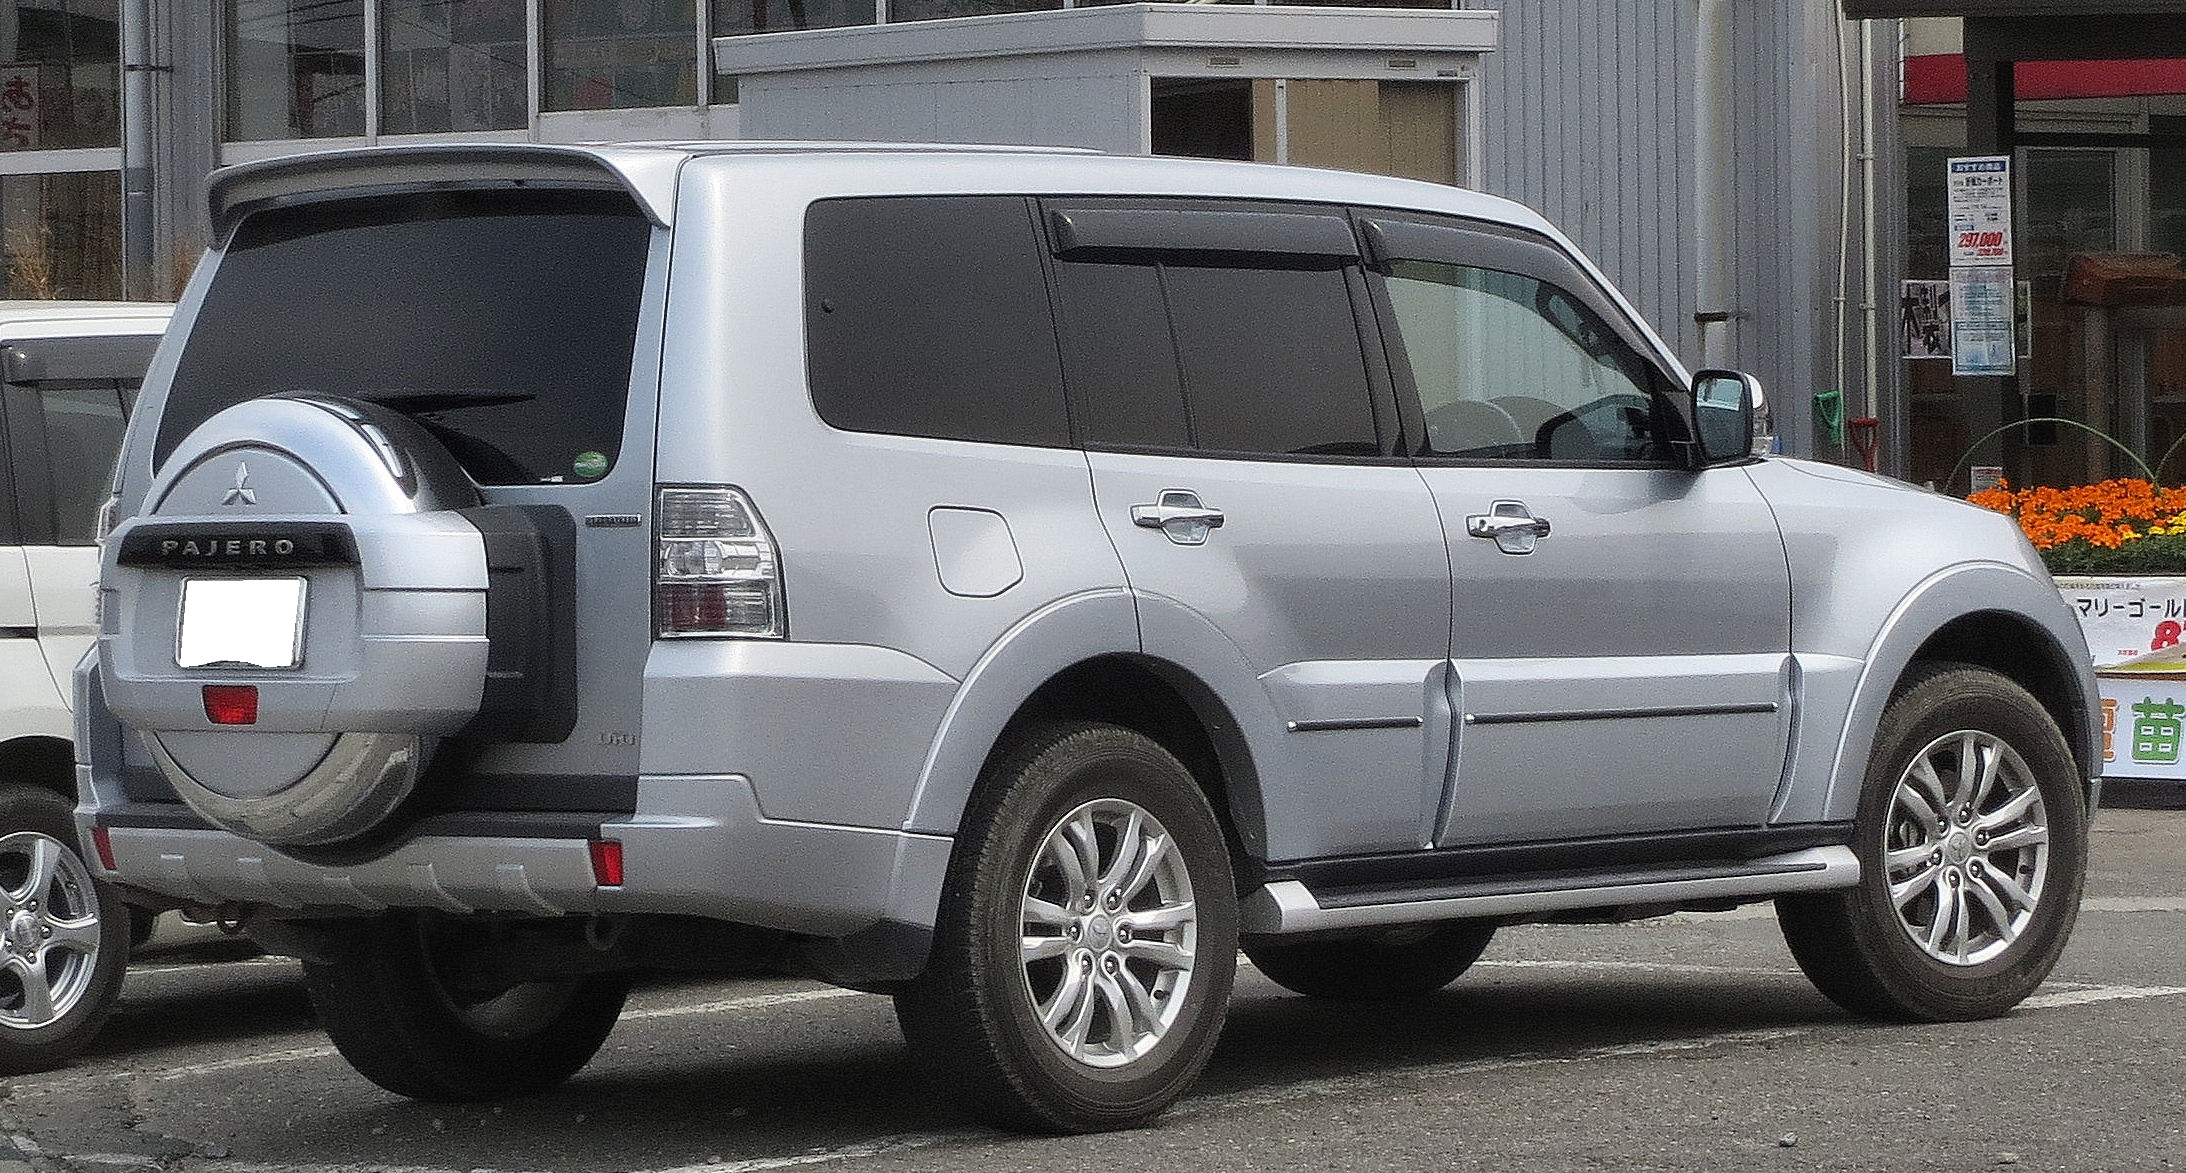 W superbly File:Mitsubishi V98 Pajero Long Body Super Exceed 3200 DI-D Rear TY73